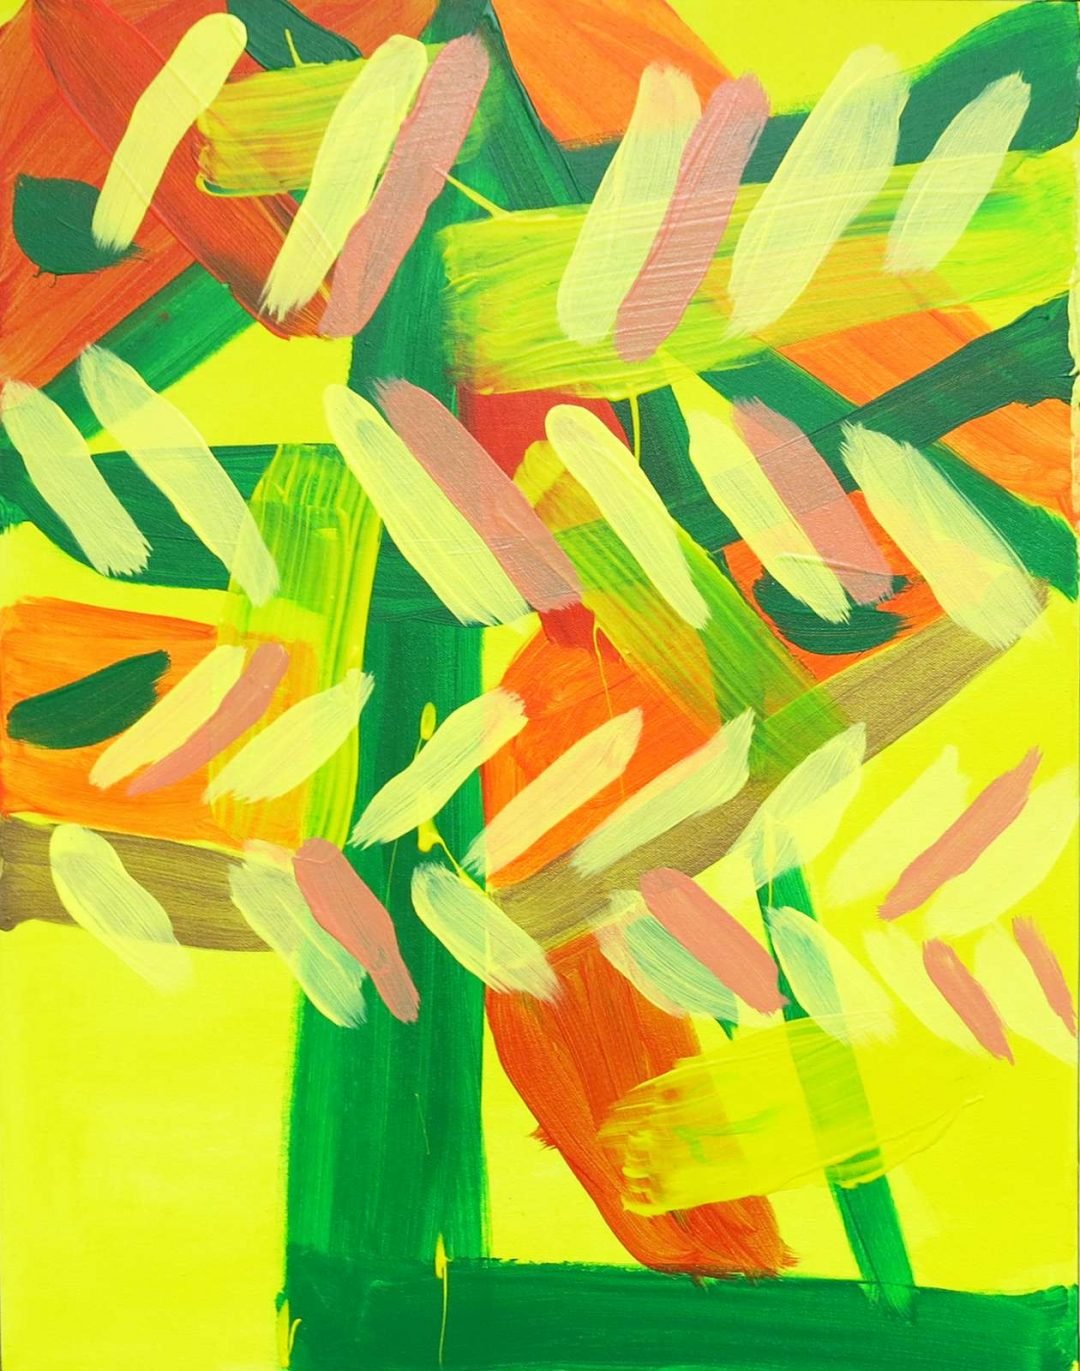 Yellows, oranges and greens abstract design painting by Tyler